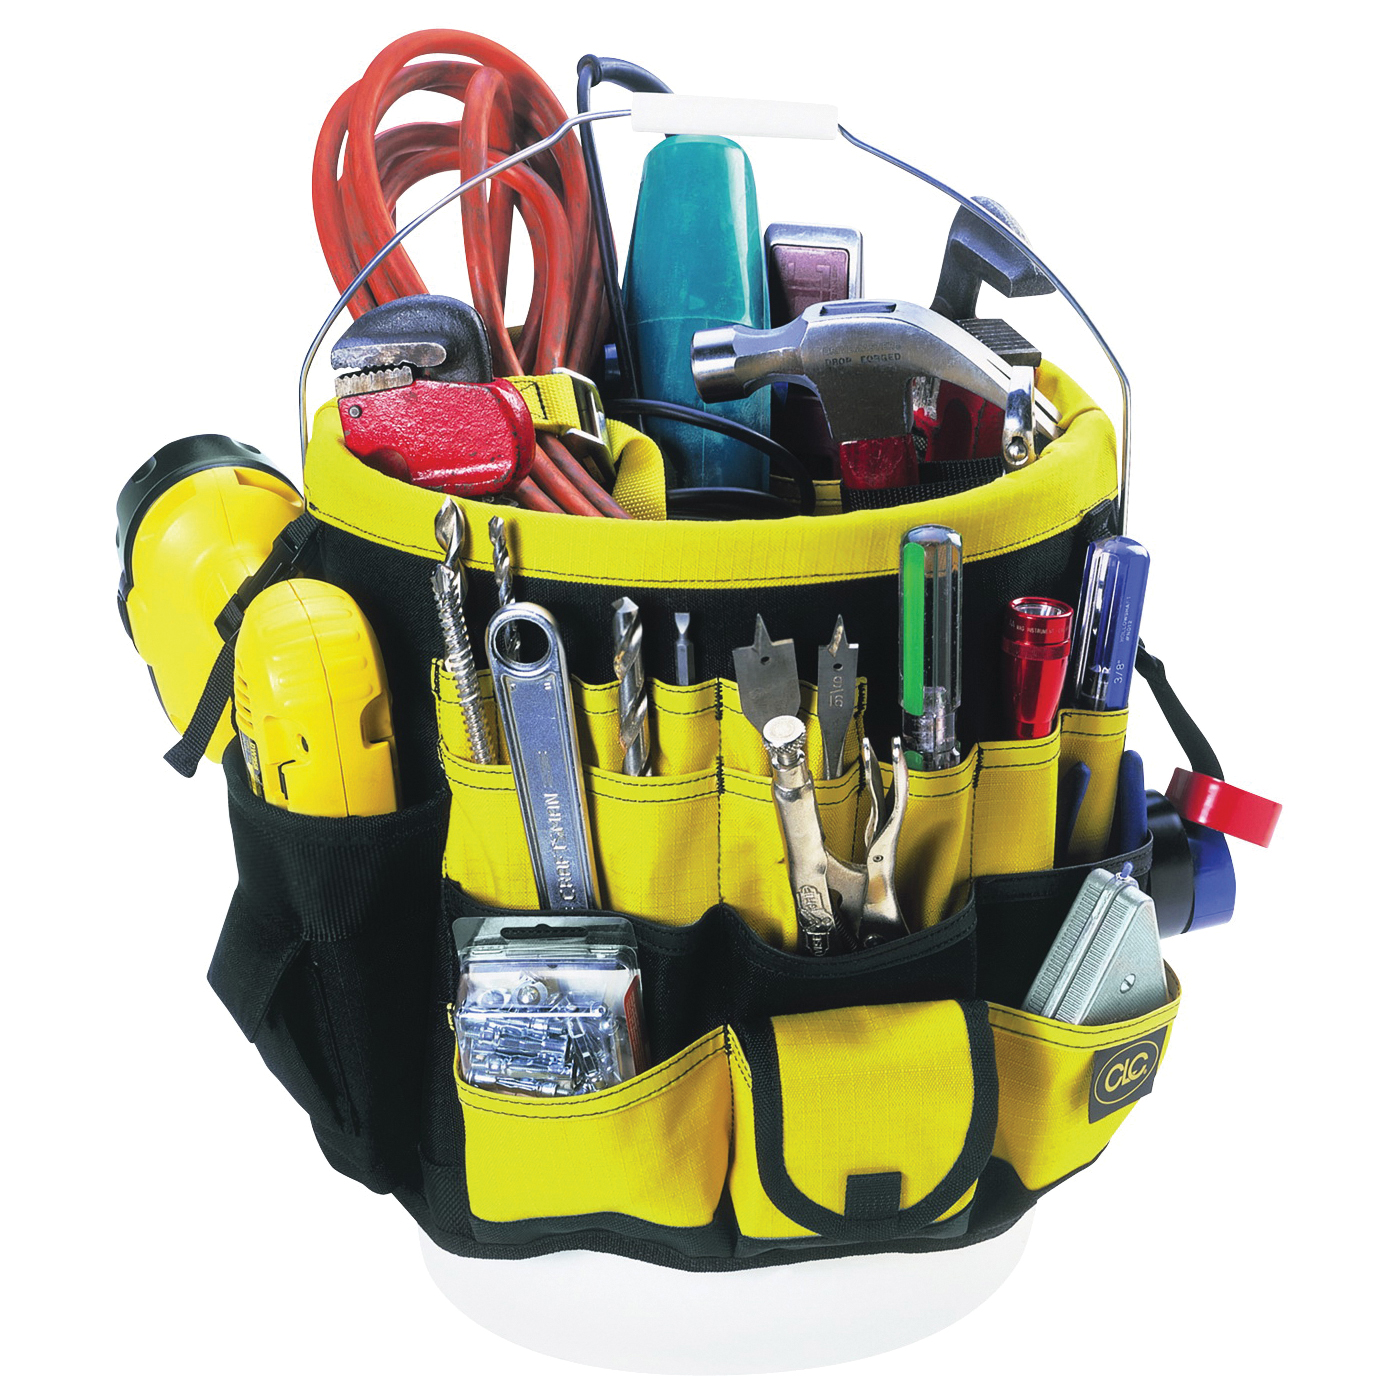 Picture of CLC Tool Works 4122 Bucket Tool Organizer, 61 -Compartment, Rip-Stop Fabric, Black/Yellow